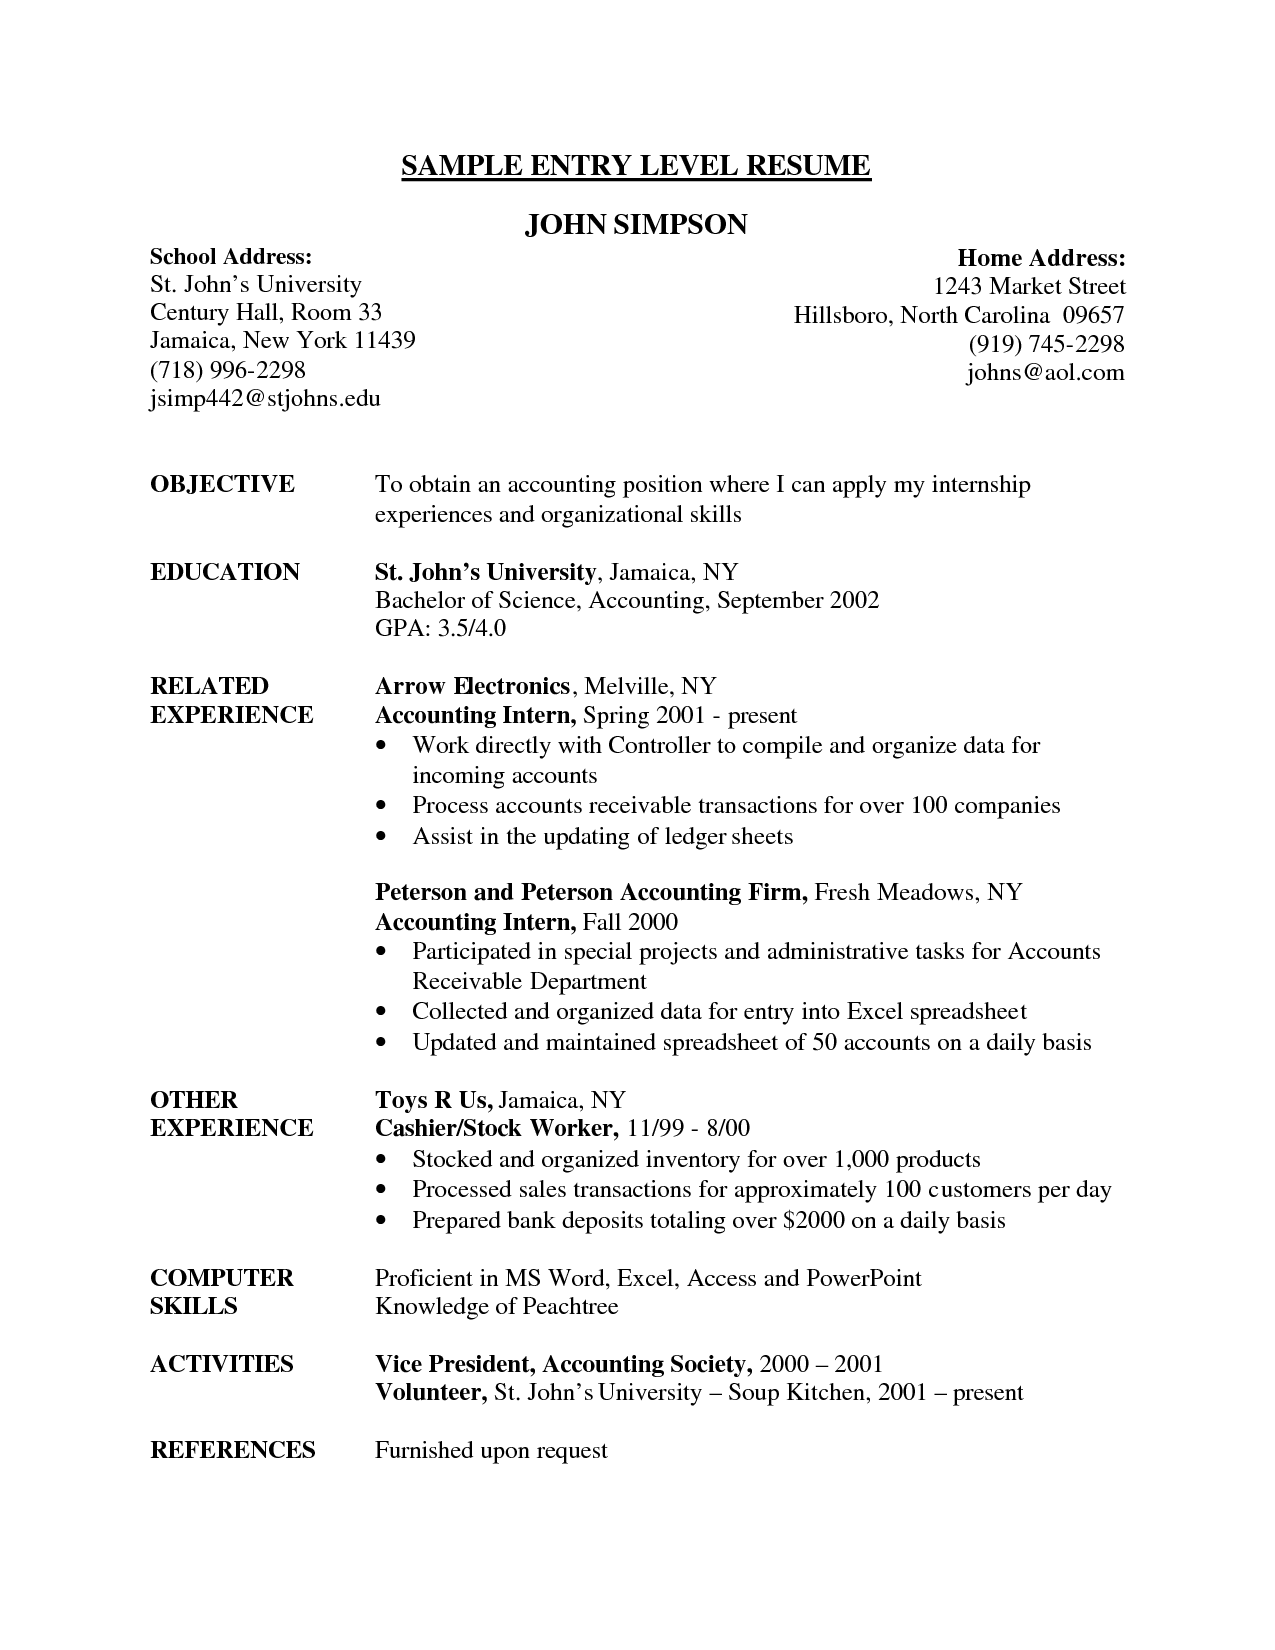 Example Of Resume Profile Entry Level   Http://www.resumecareer.info  Professional Interests For Resume